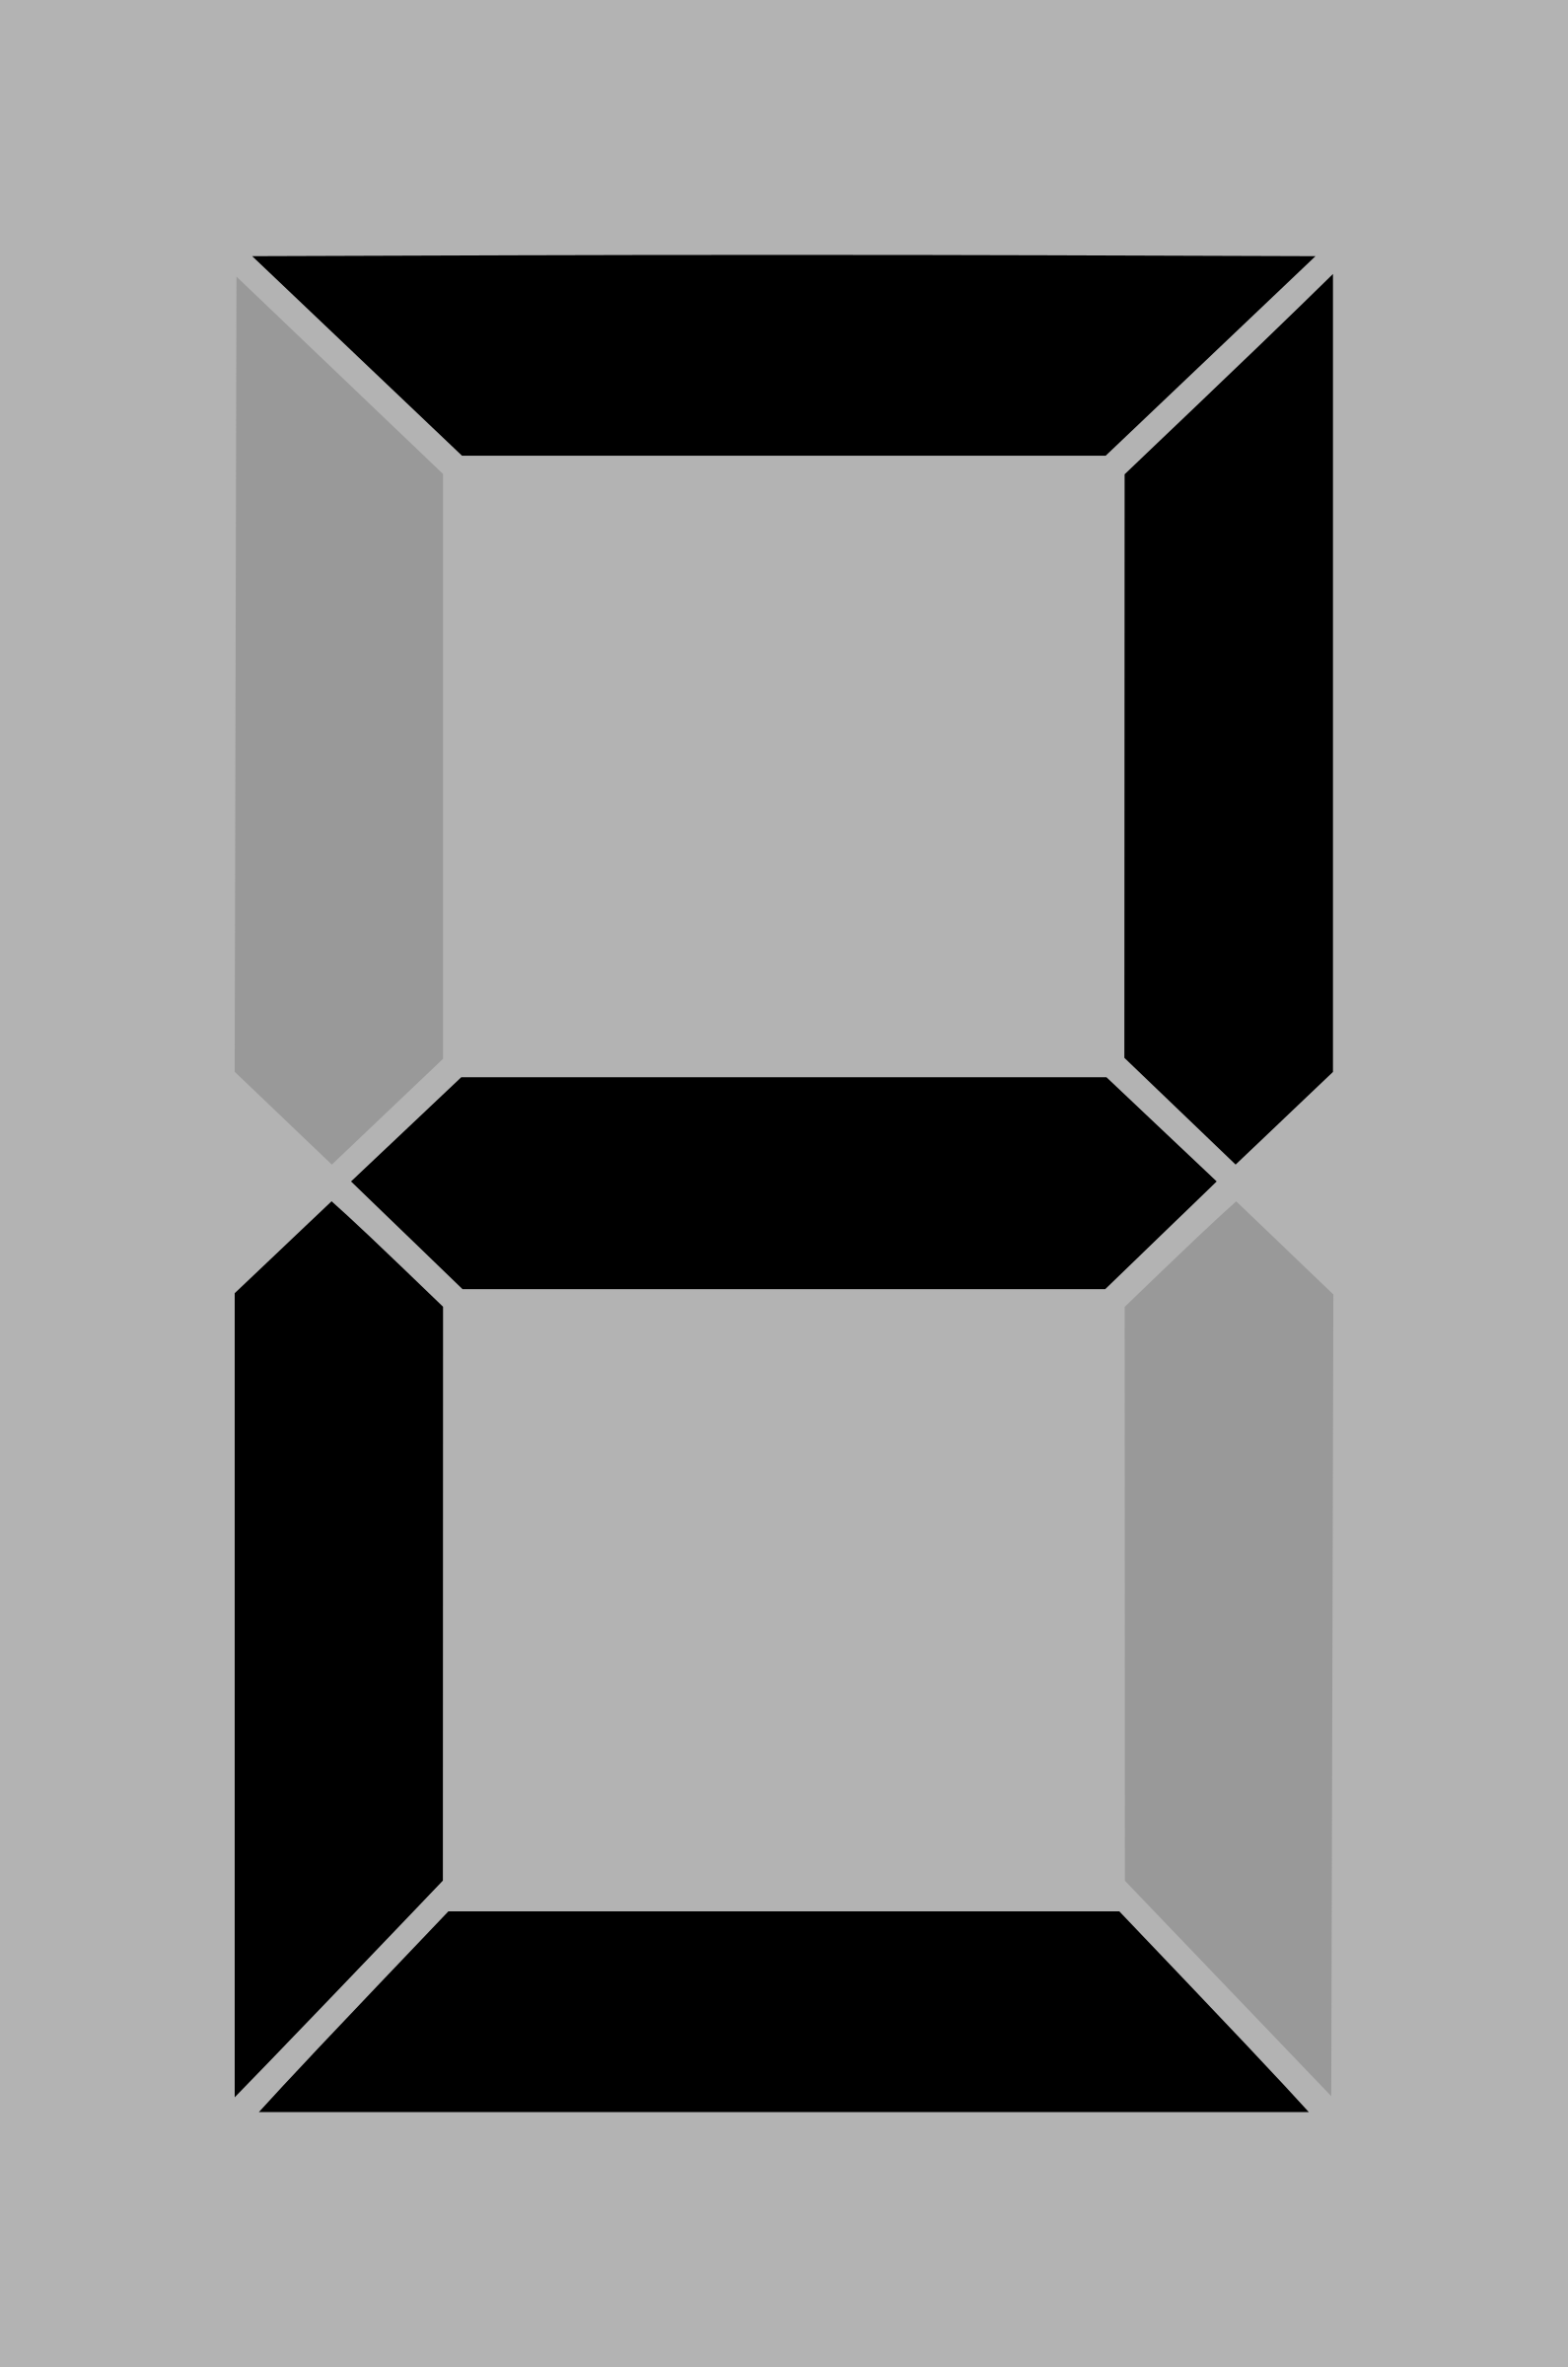 Seven segment display gray 2 by alex8664